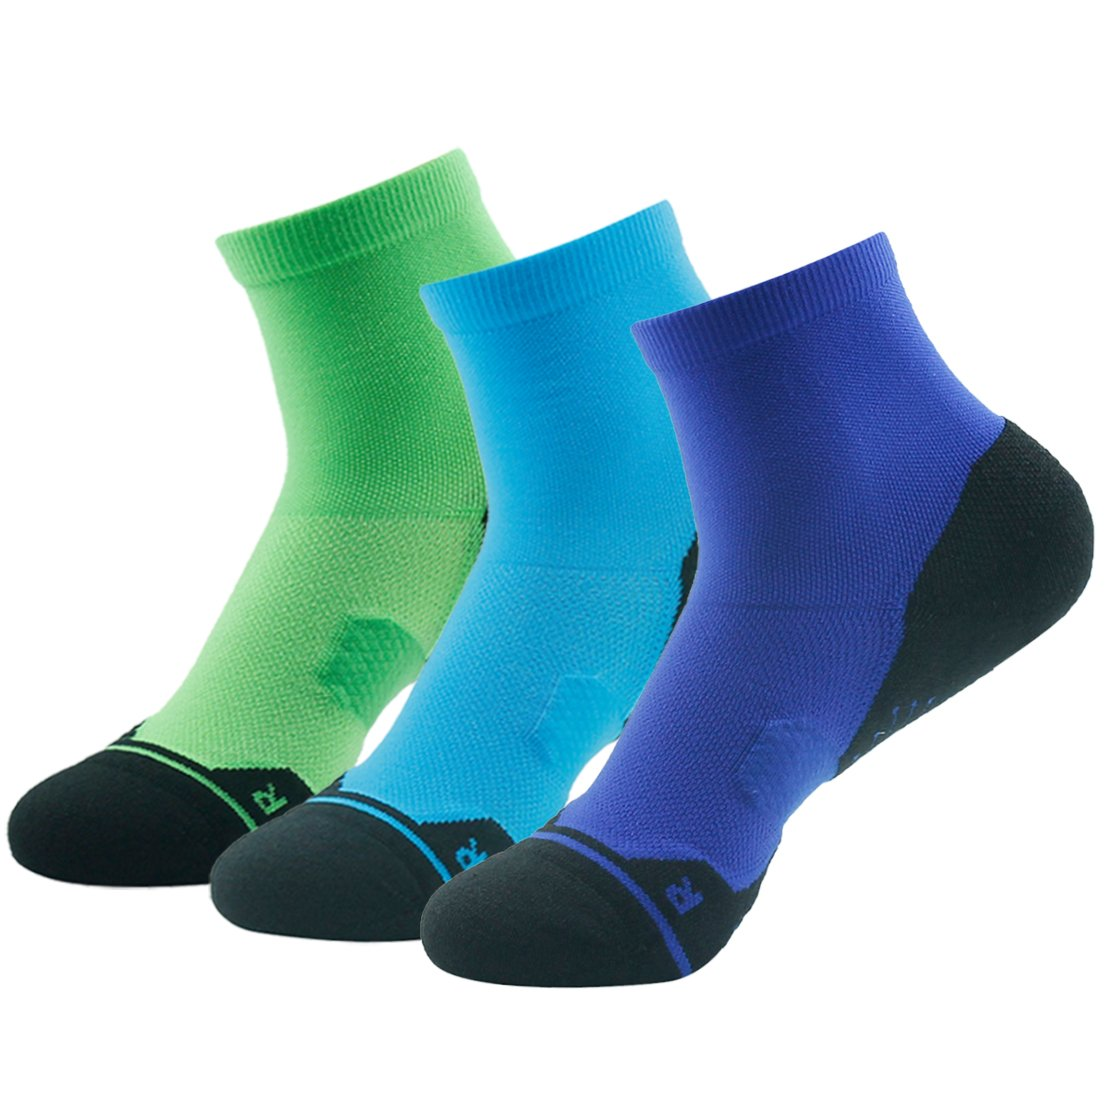 Z3 Pair bluee&green&navy bluee Running Socks Support, HUSO Men Women High Performance Arch Compression Cushioned Quarter Socks 1,2,3,4,6 Pairs